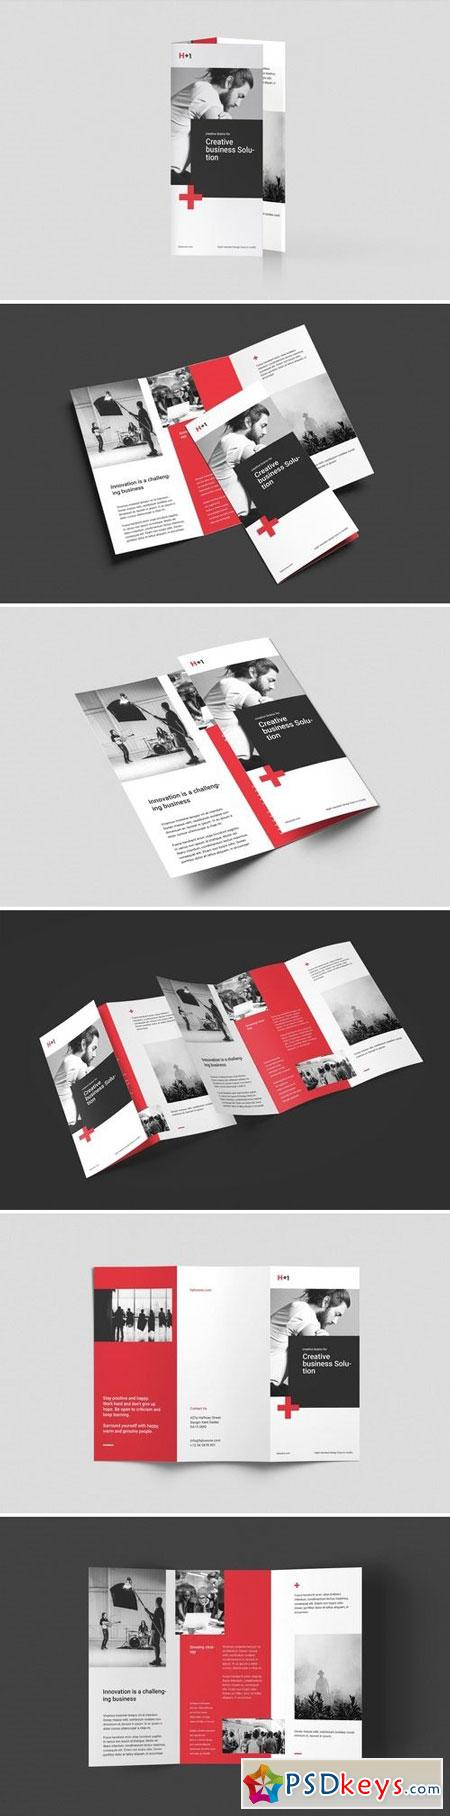 Corporate Trifold Brochure 3002849